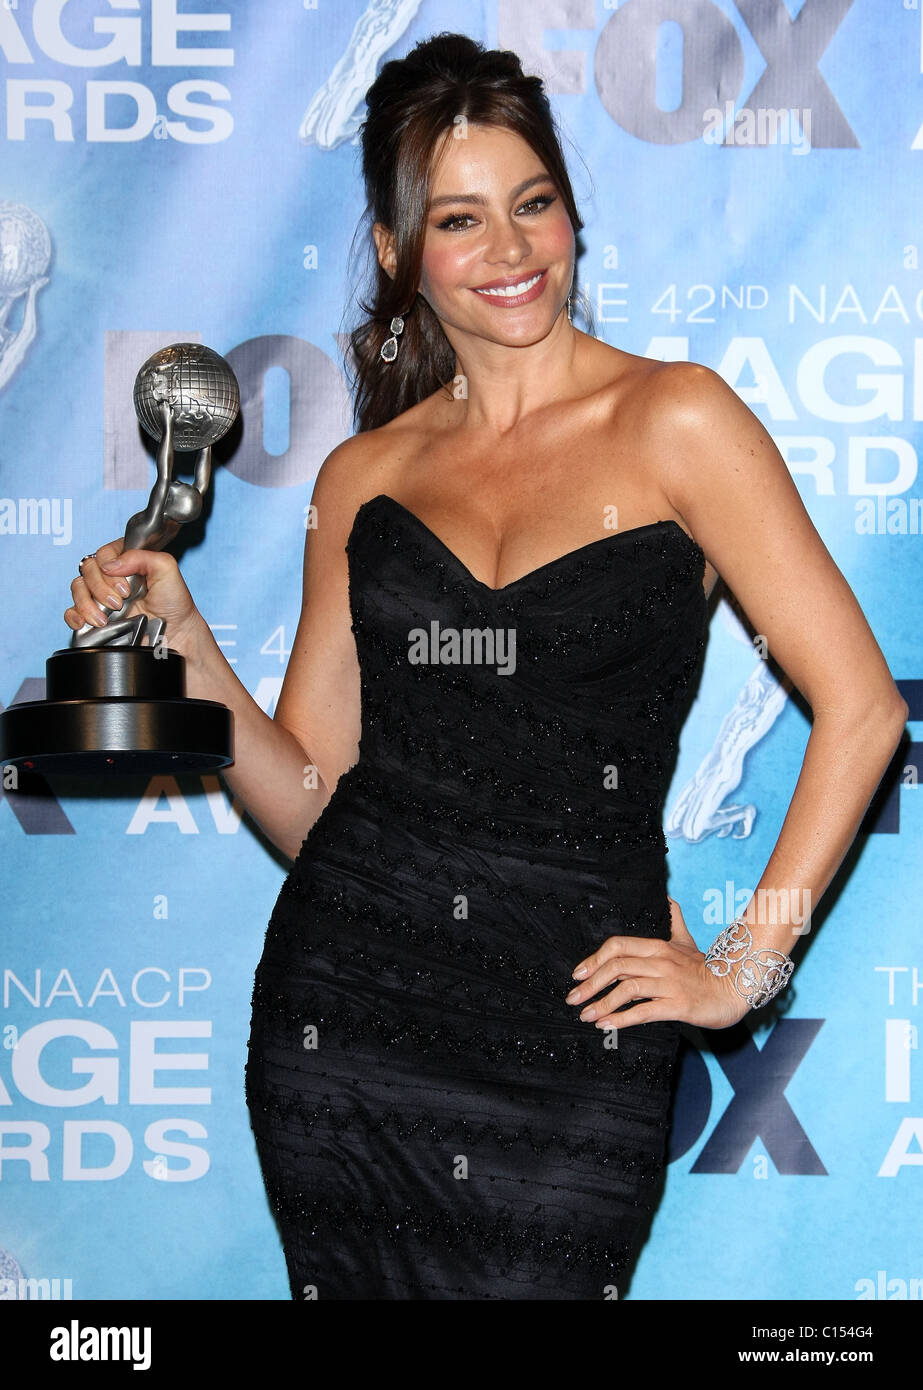 SOFIA VERGARA 42ND NAACP IMAGE AWARDS PRESSROOM. DOWNTOWN LOS ANGELES CALIFORNIA USA 04 March 2011 - Stock Image